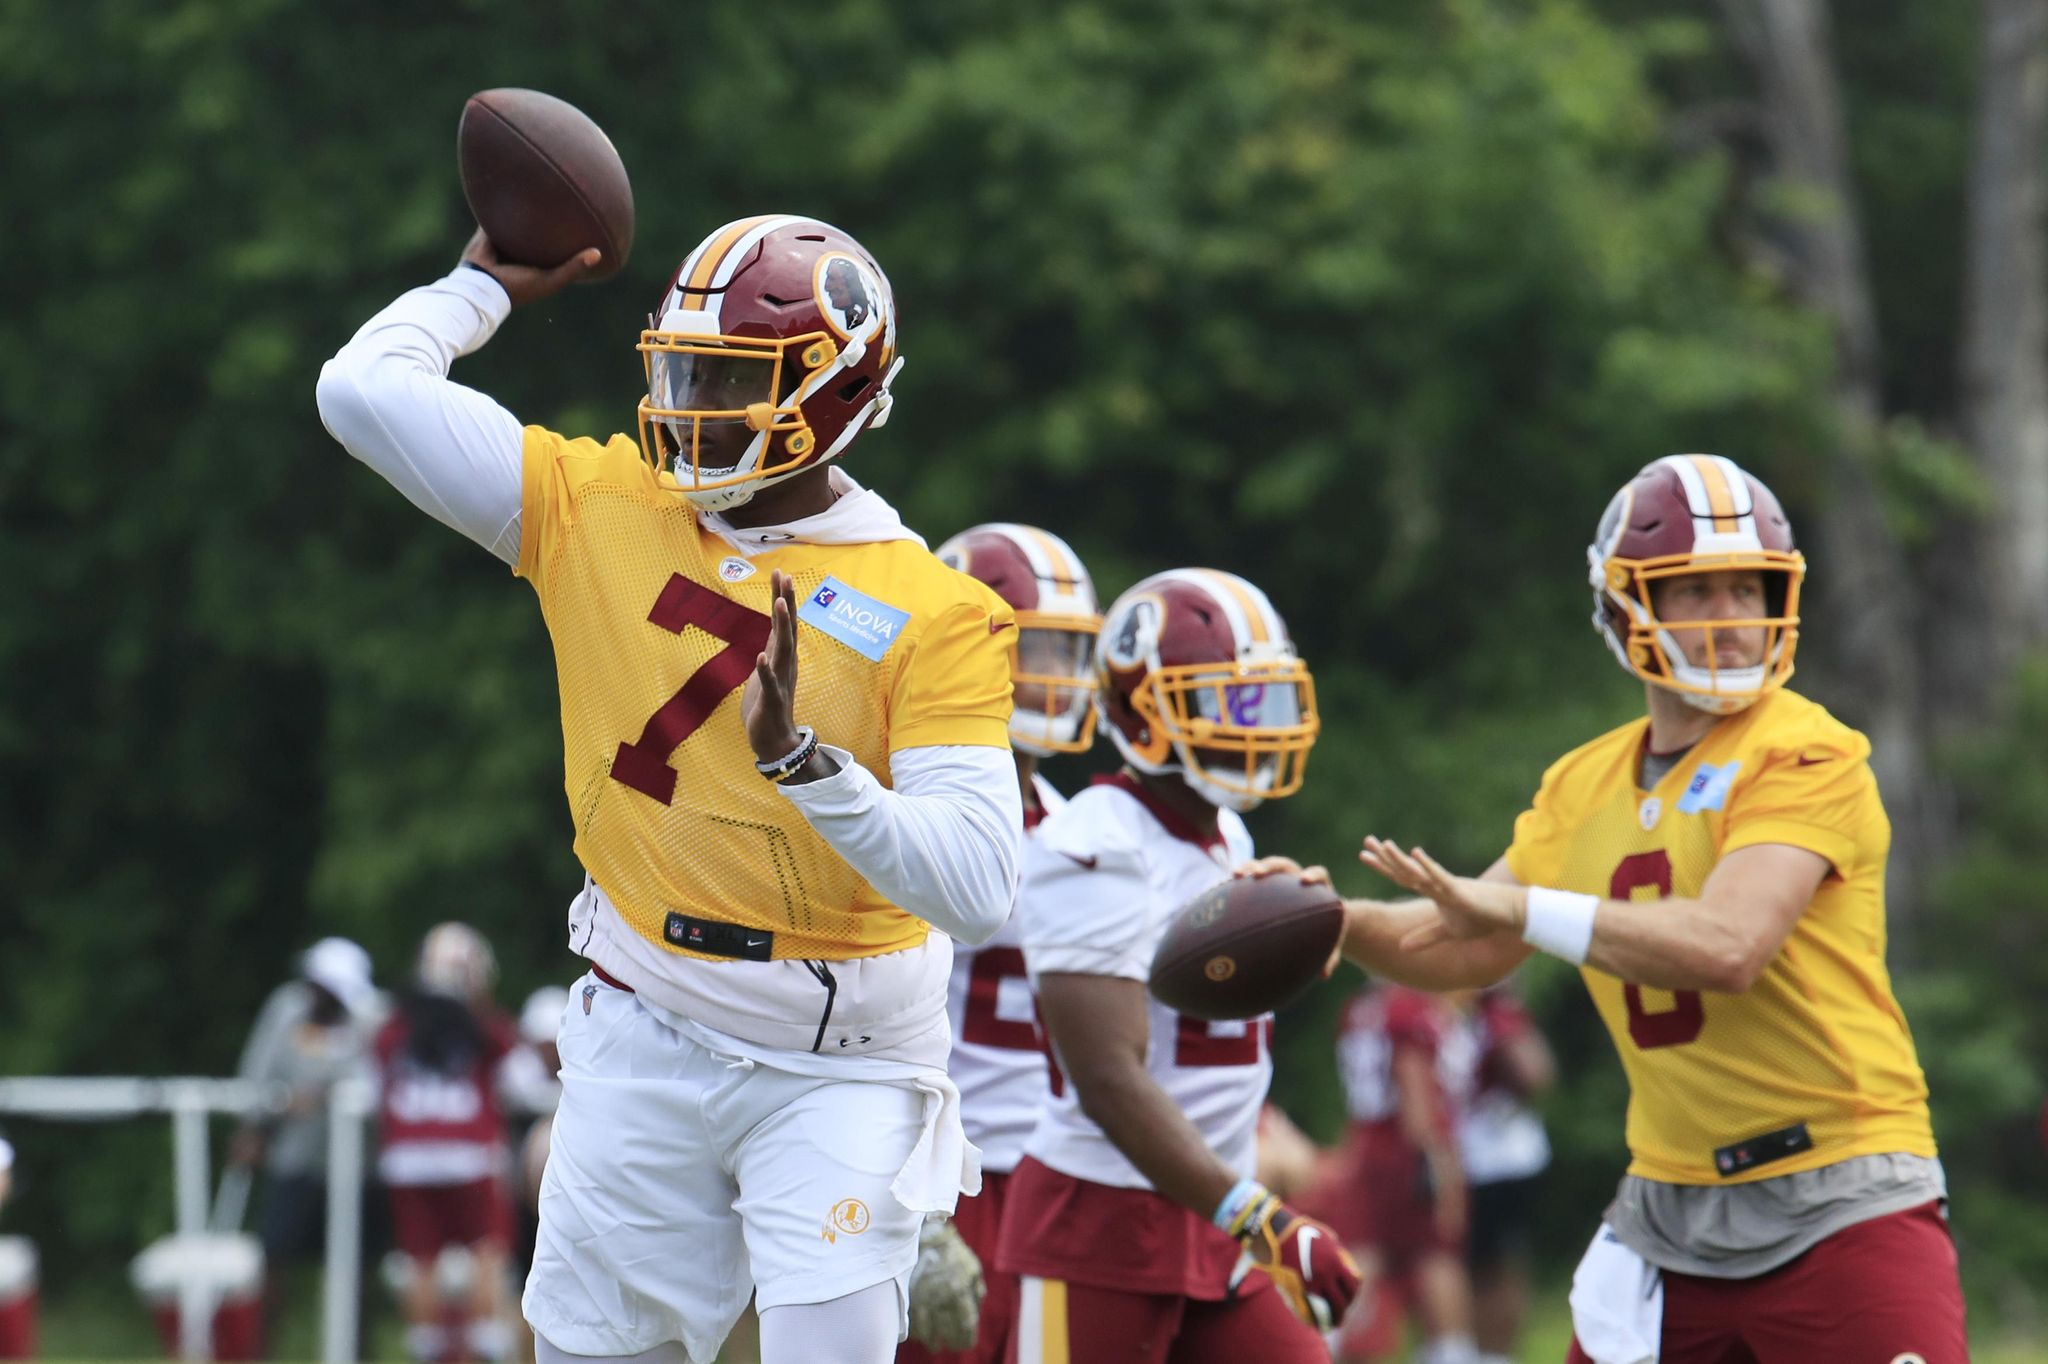 SNYDER: Let's just enjoy the quarterback competition and let it play out